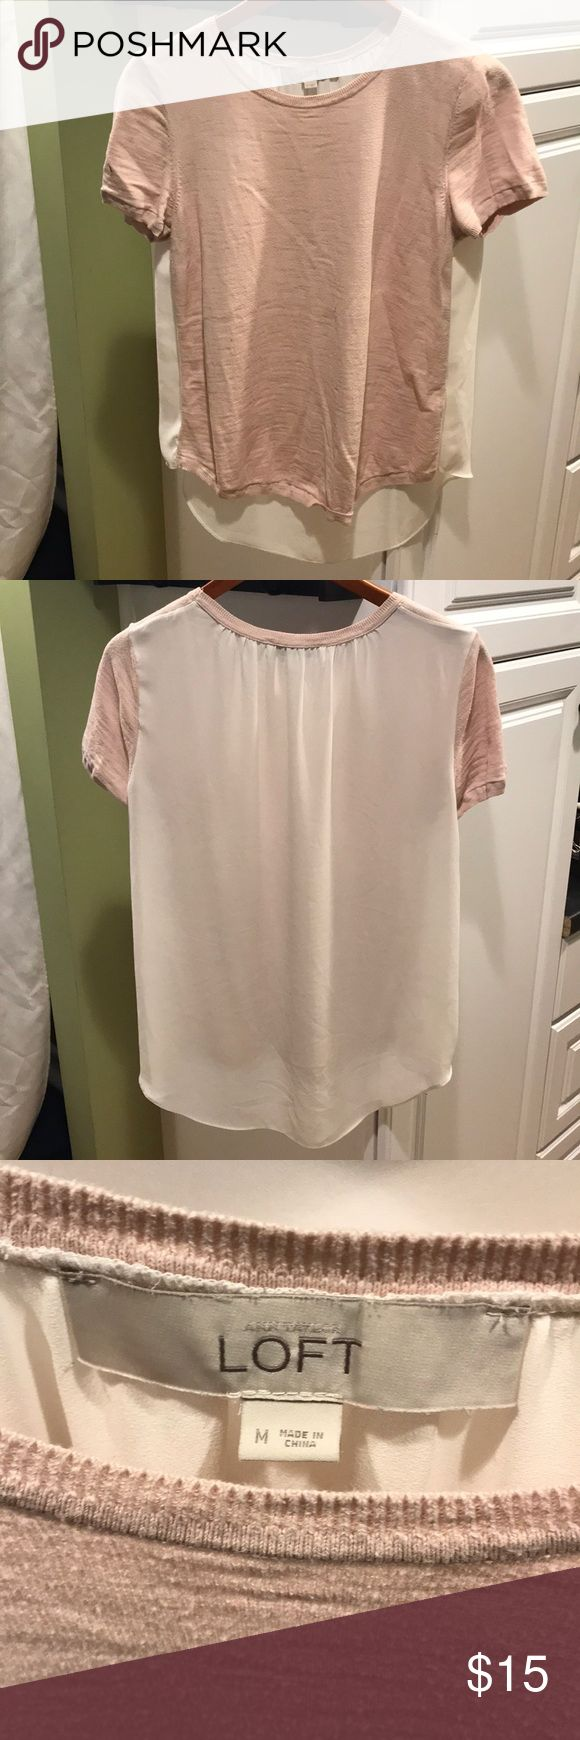 Top Great neutral top for work or going out. Looks great with dress pants or jeans. Front is soft pink and back is cream colored blousy material. Back is slightly longer than front for great coverage. LOFT Tops